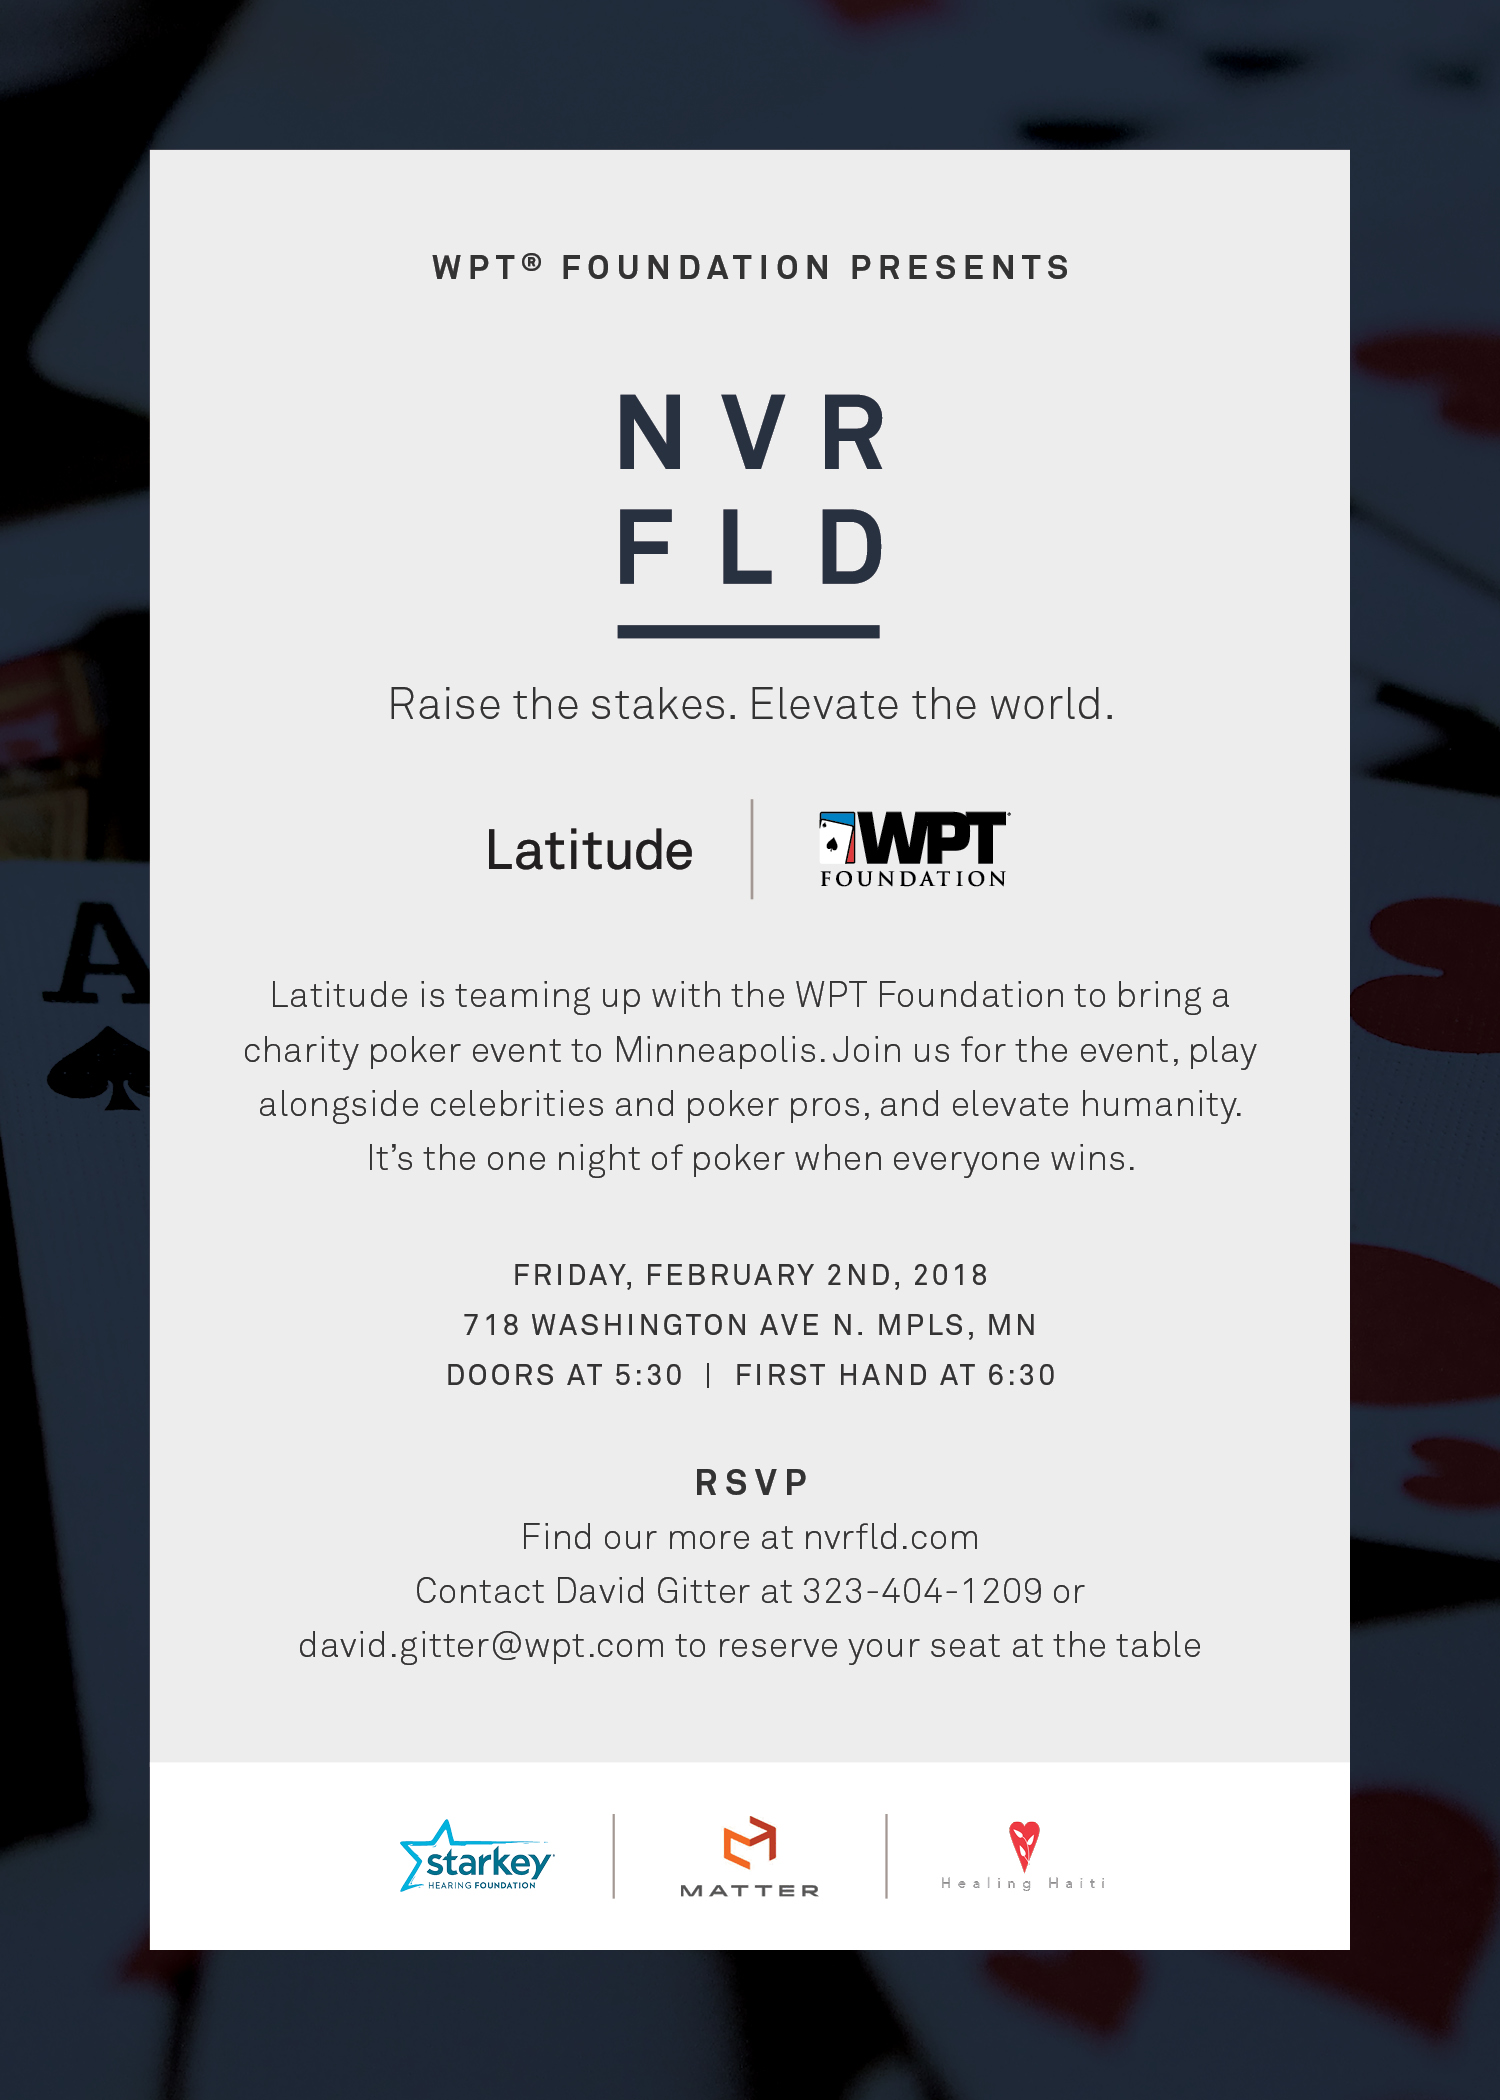 WPT Foundation Presents NVRFLD